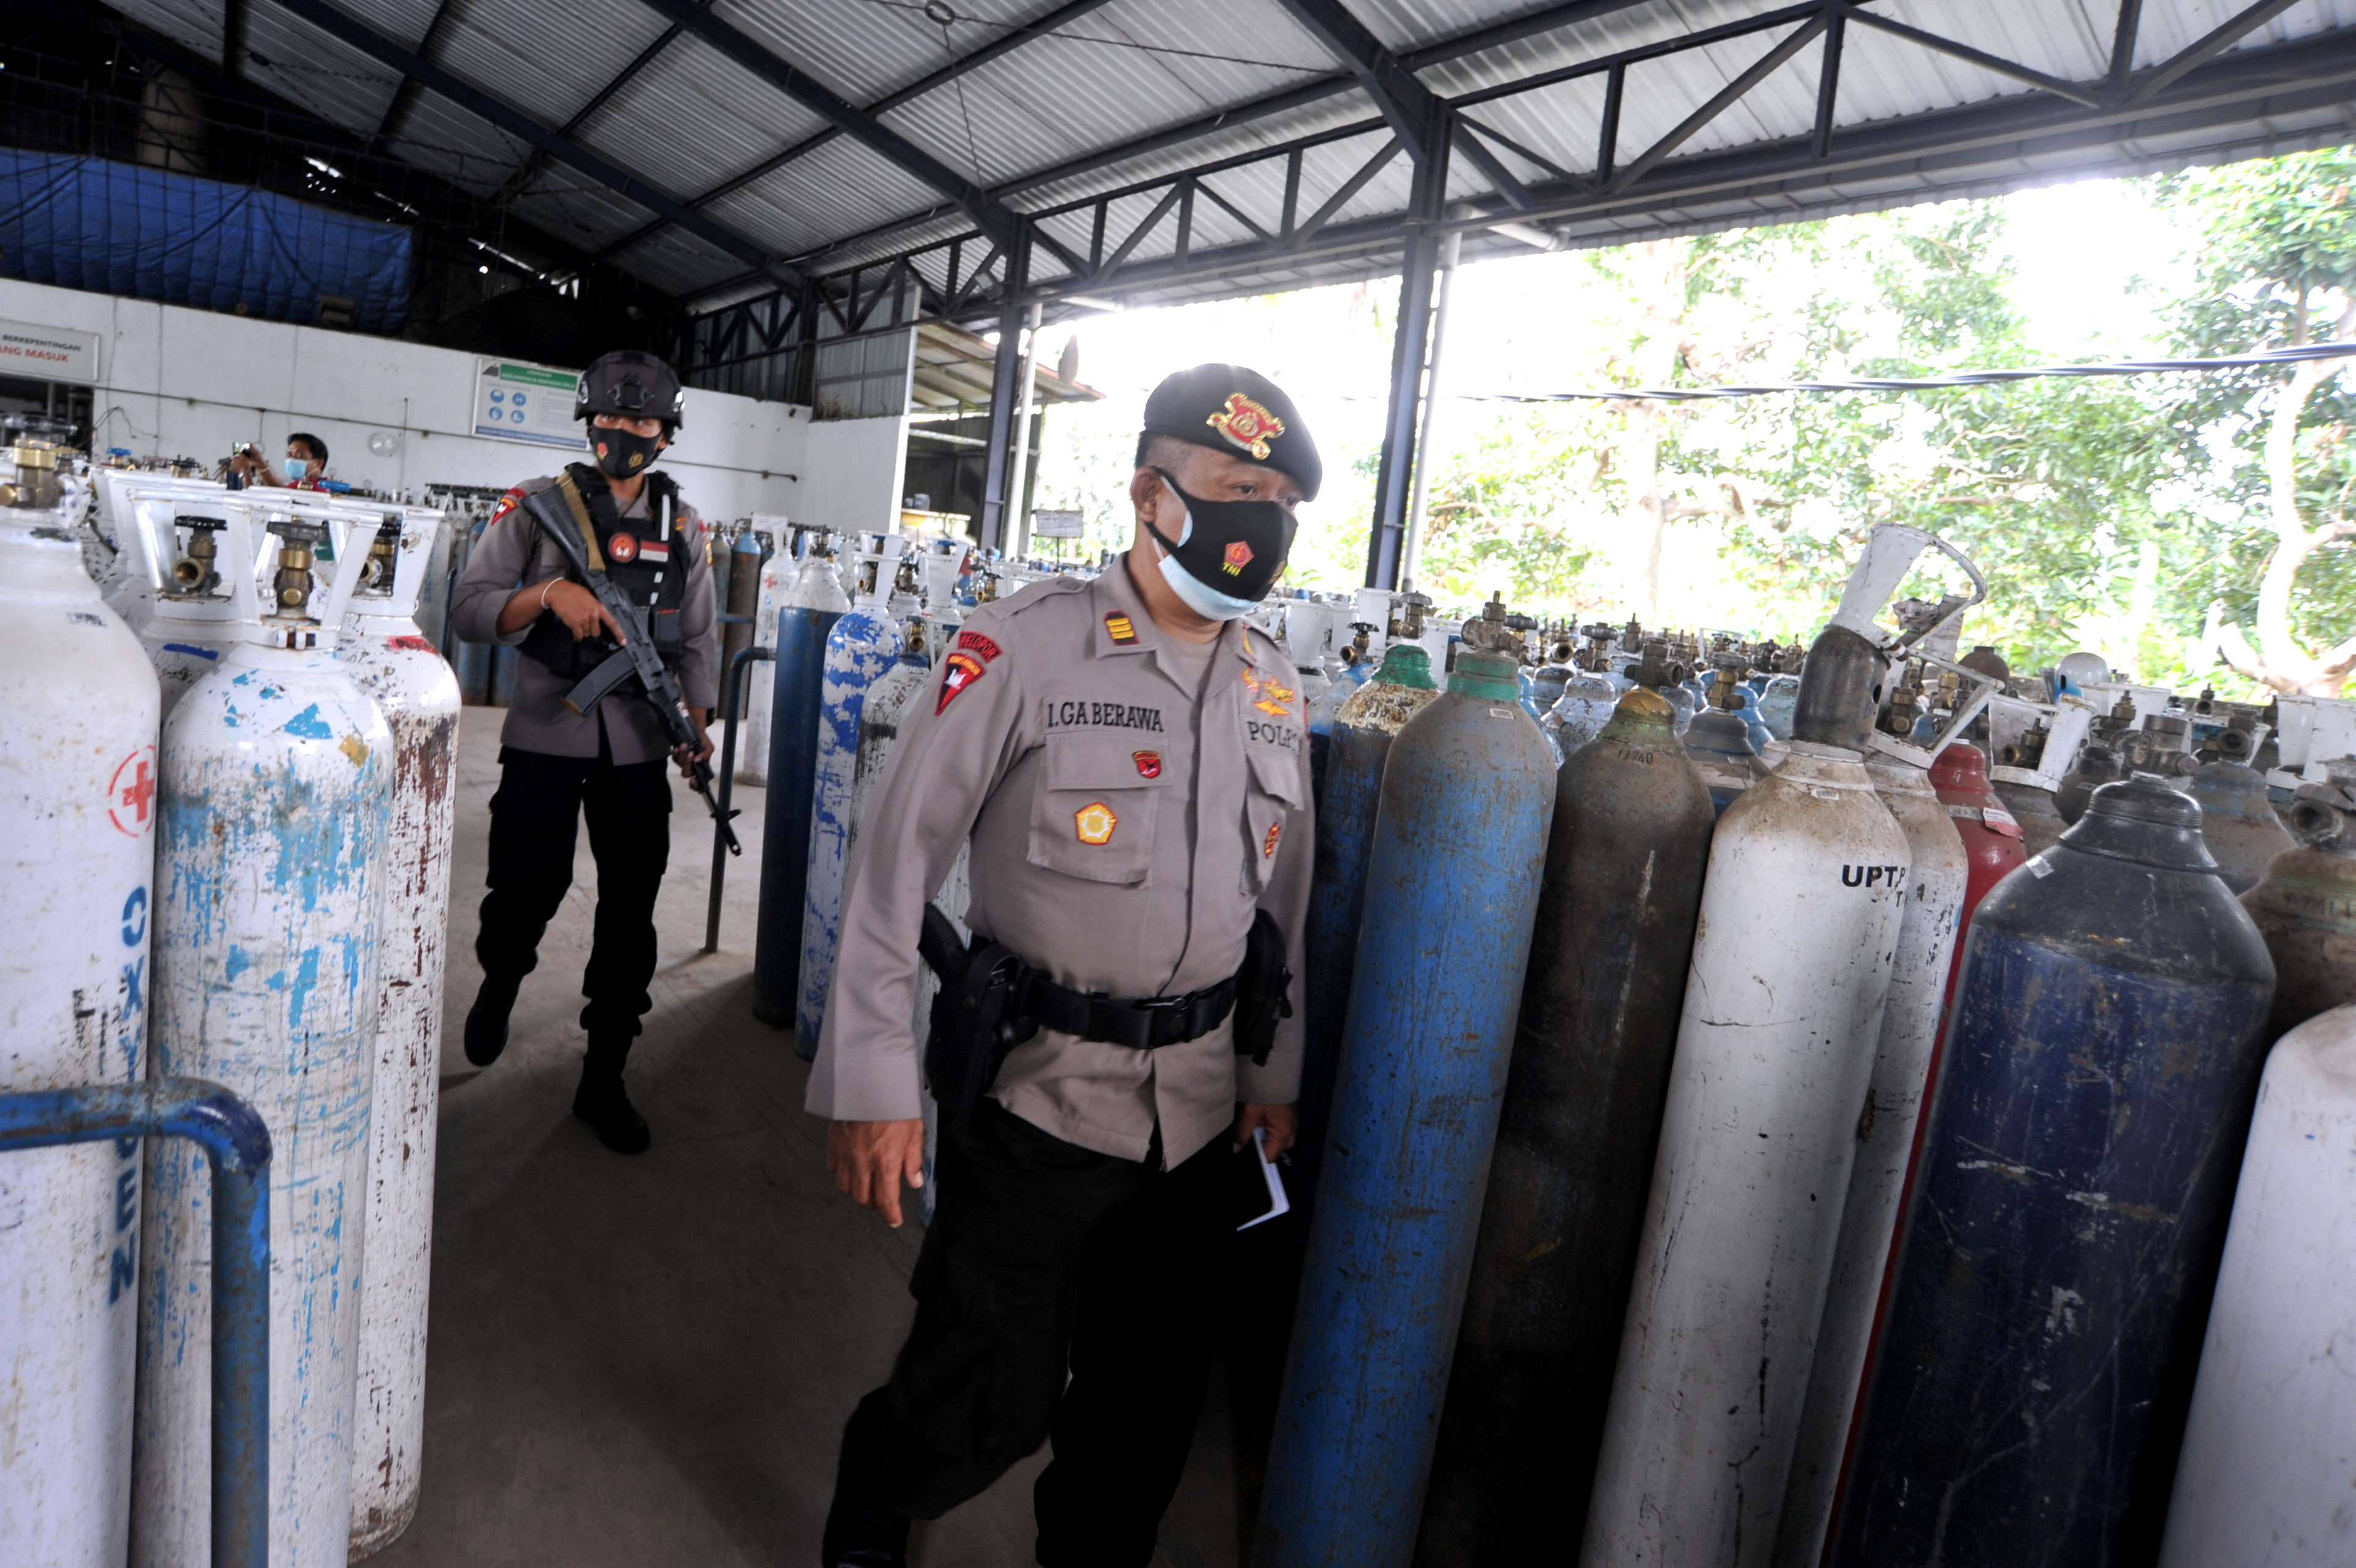 Police officers walk as they guard the oxygen distribution at a refill factory amid the coronavirus disease (COVID-19) outbreak in Mengwi, Badung, Bali, Indonesia, July 22, 2021, in this photo taken by Antara Foto. Antara Foto/Fikri Yusuf/ via REUTERS